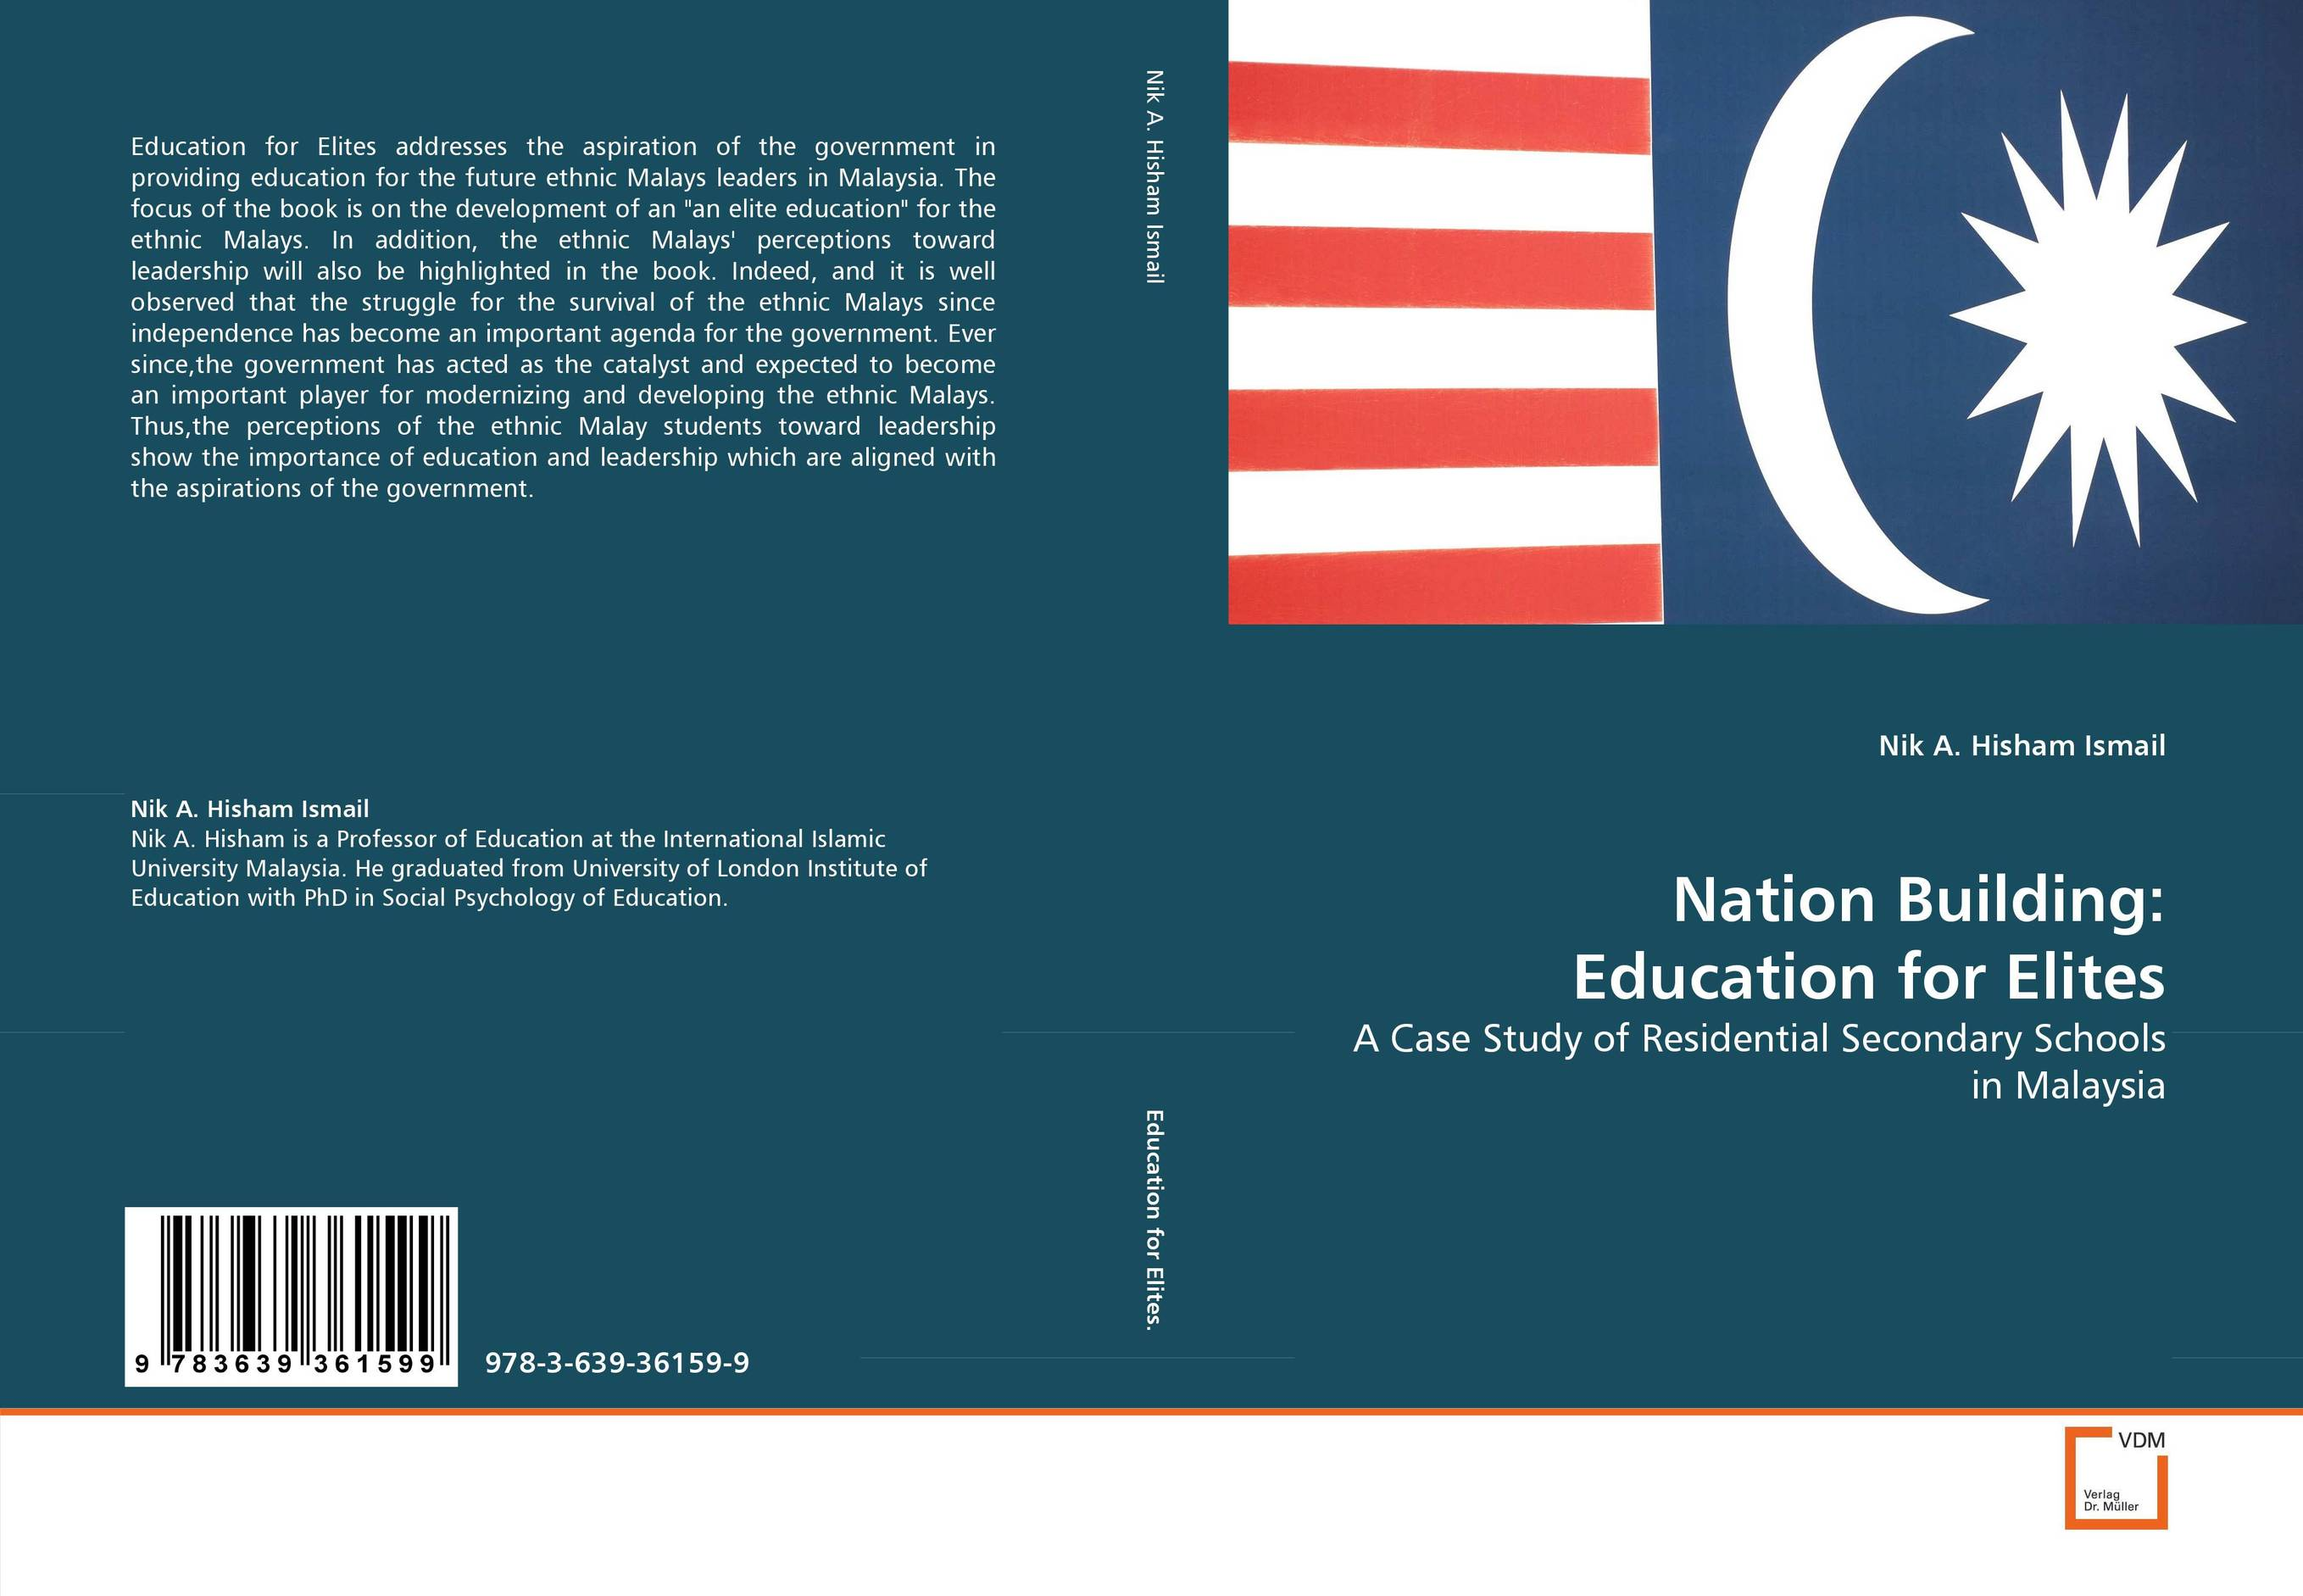 Nation Building: Education for Elites education and multiethnic malaysia